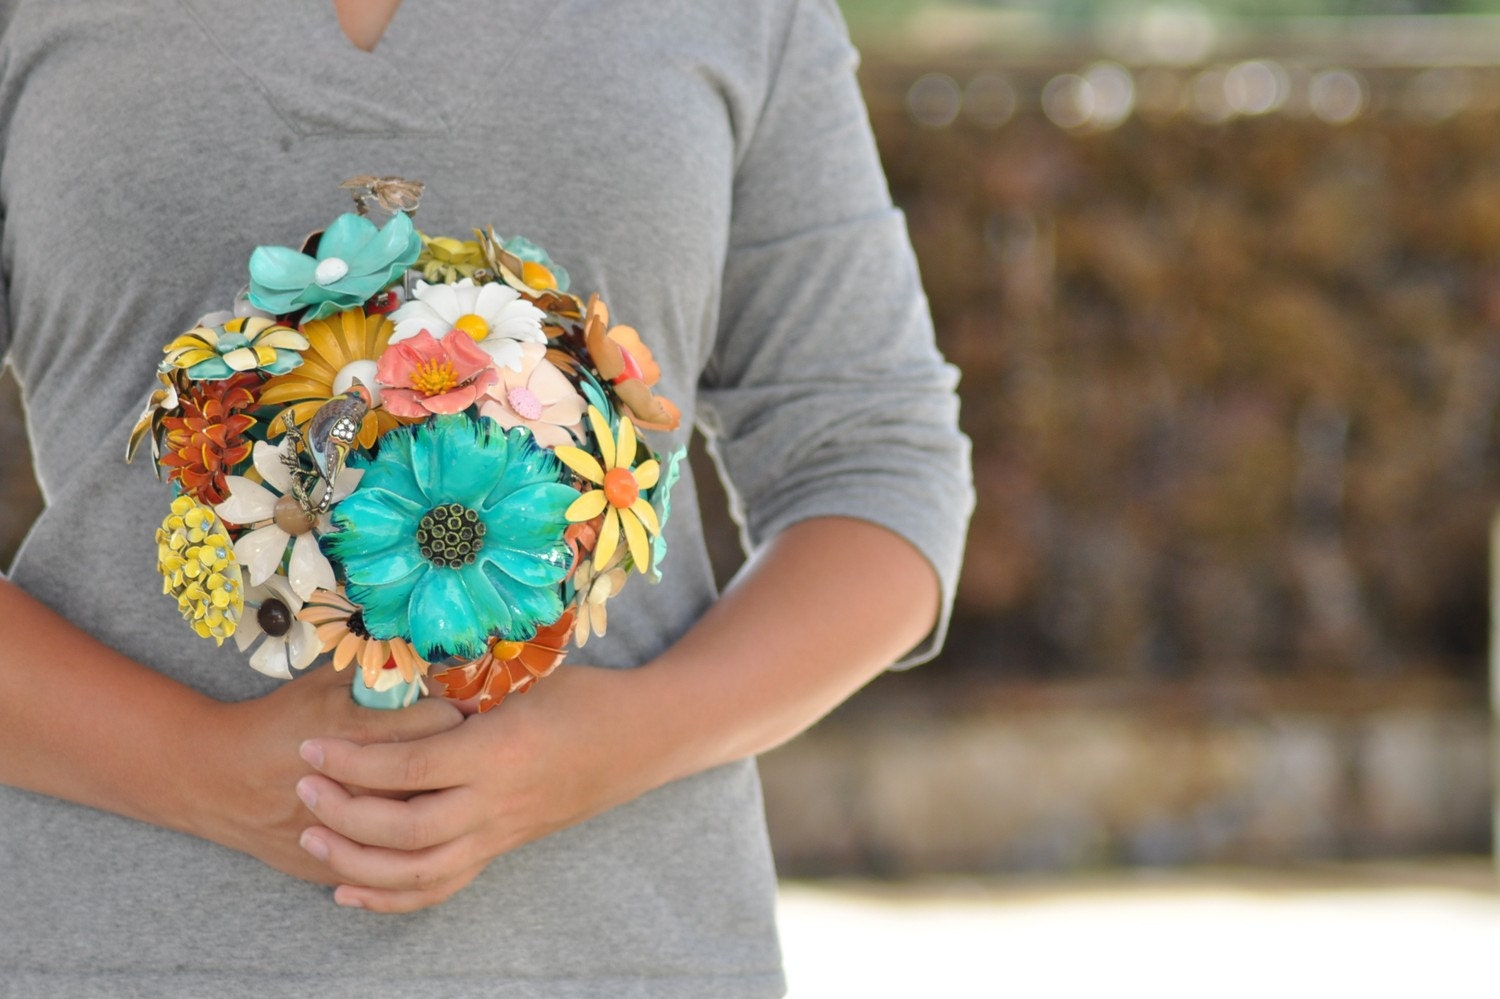 CUSTOM MADE Vintage Brooch Wedding Bouquet - to fit your color, style & budget